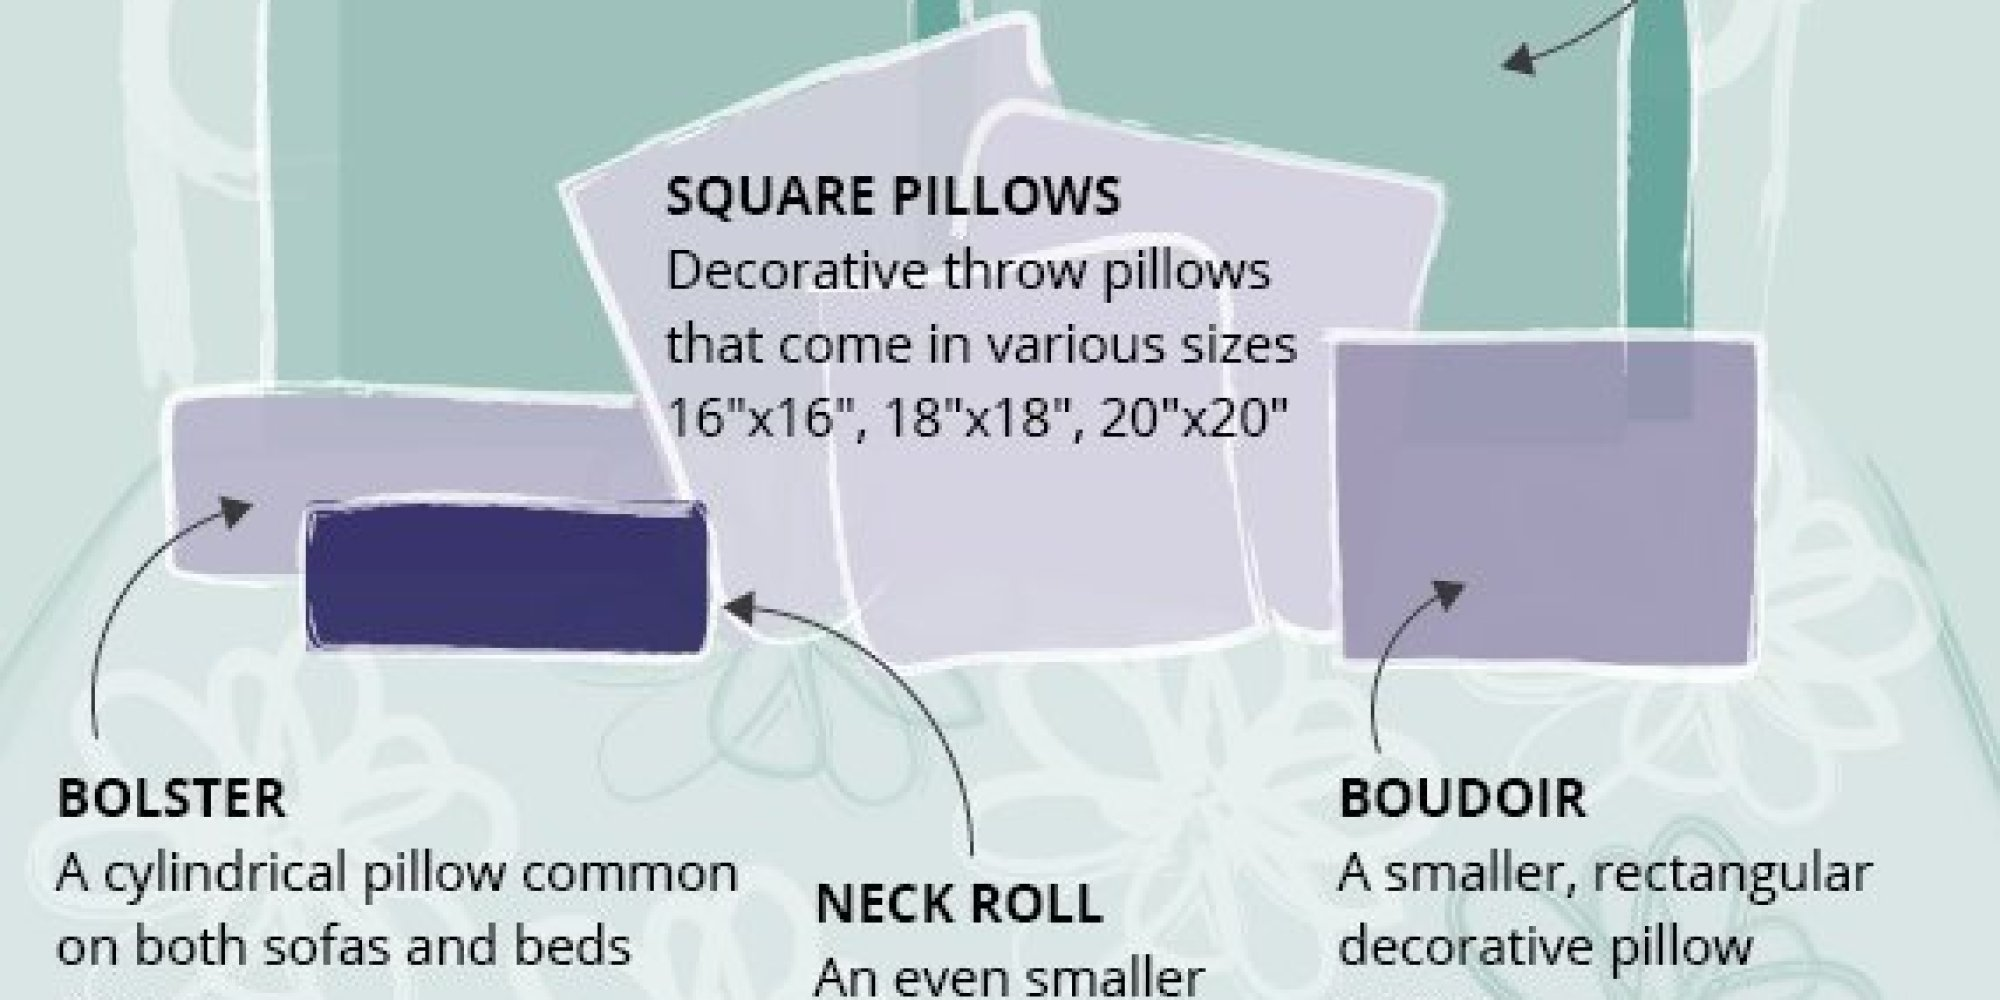 Finally a basic guide to all those decorative pillows huffpost falaconquin